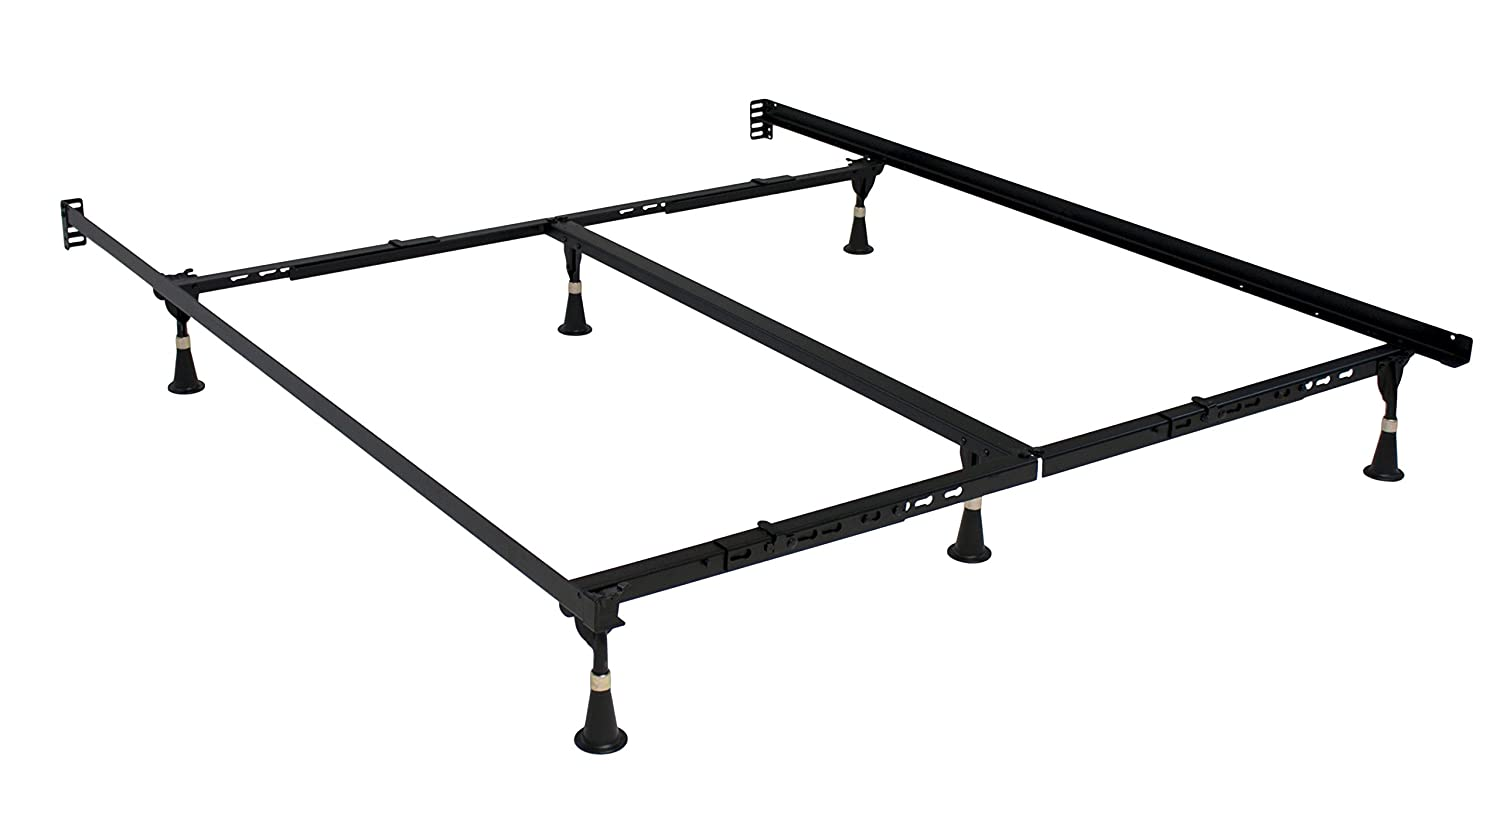 Amazon.com: Hollywood Bed Frames 3270BSG Premium Lev-R-Lock Bed ...